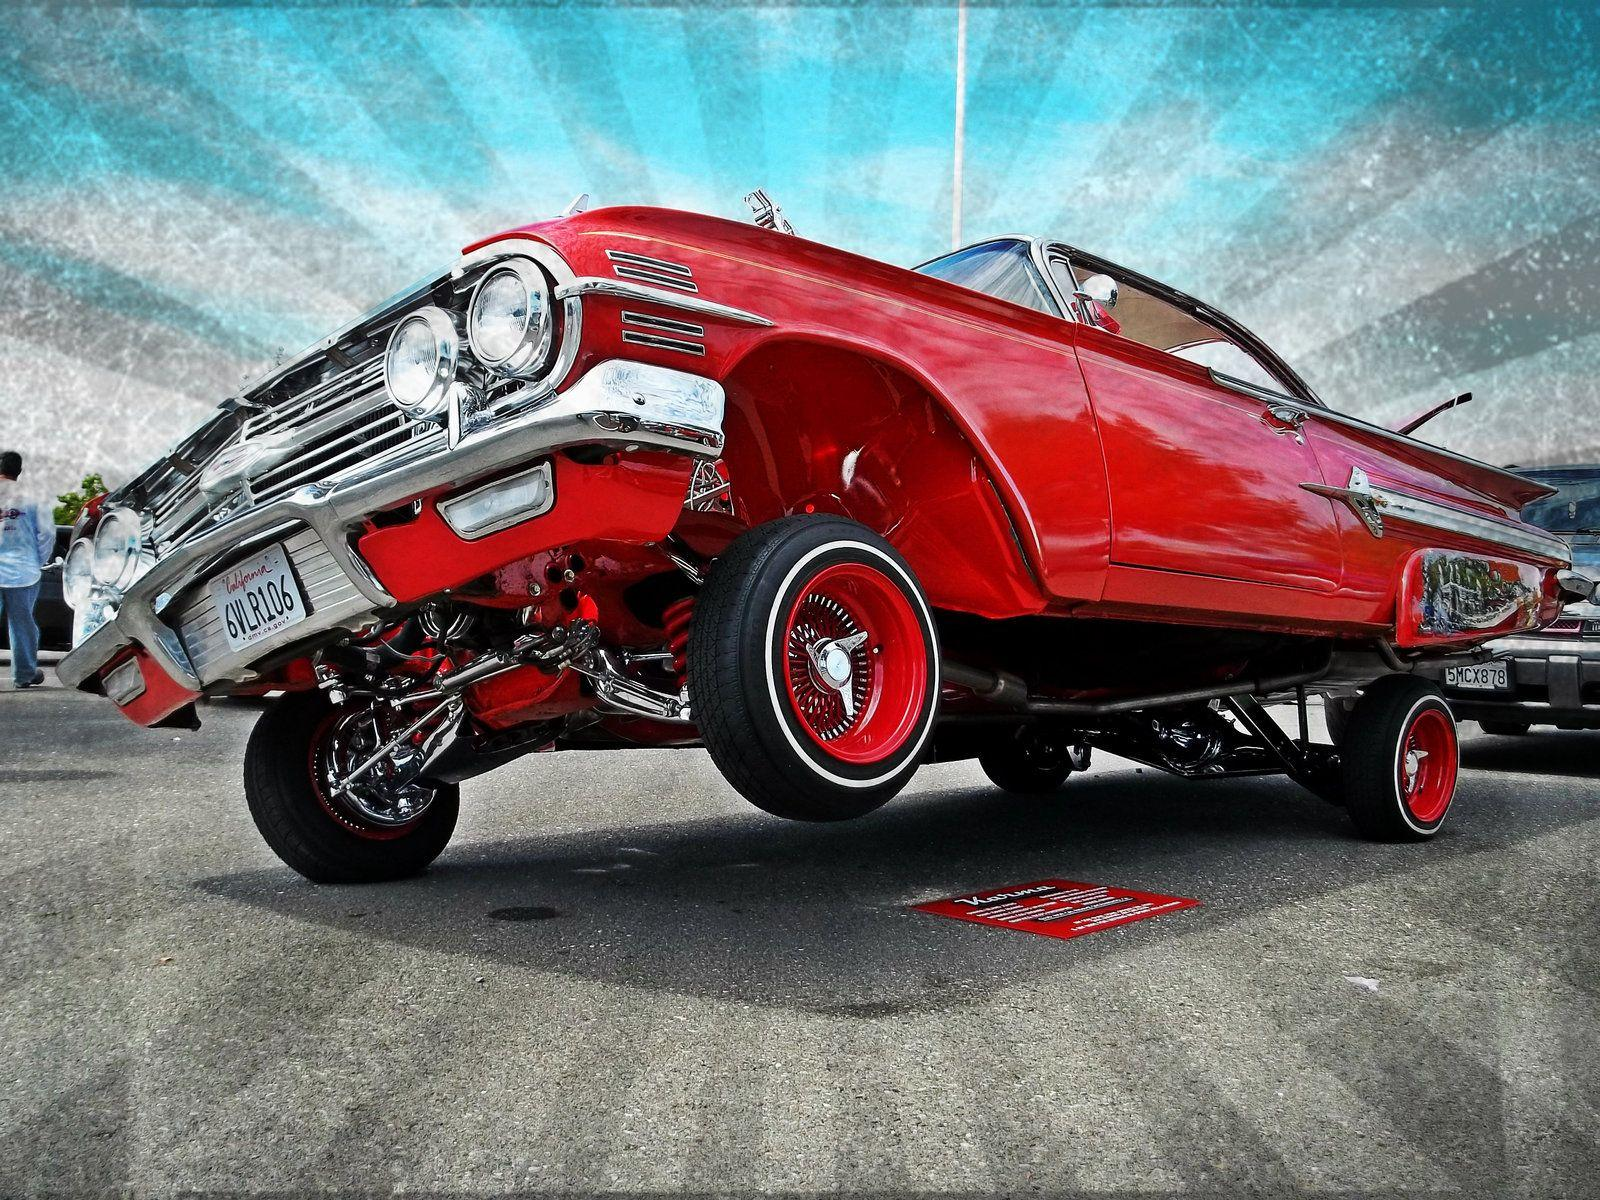 1964 Impala Lowrider Wallpapers